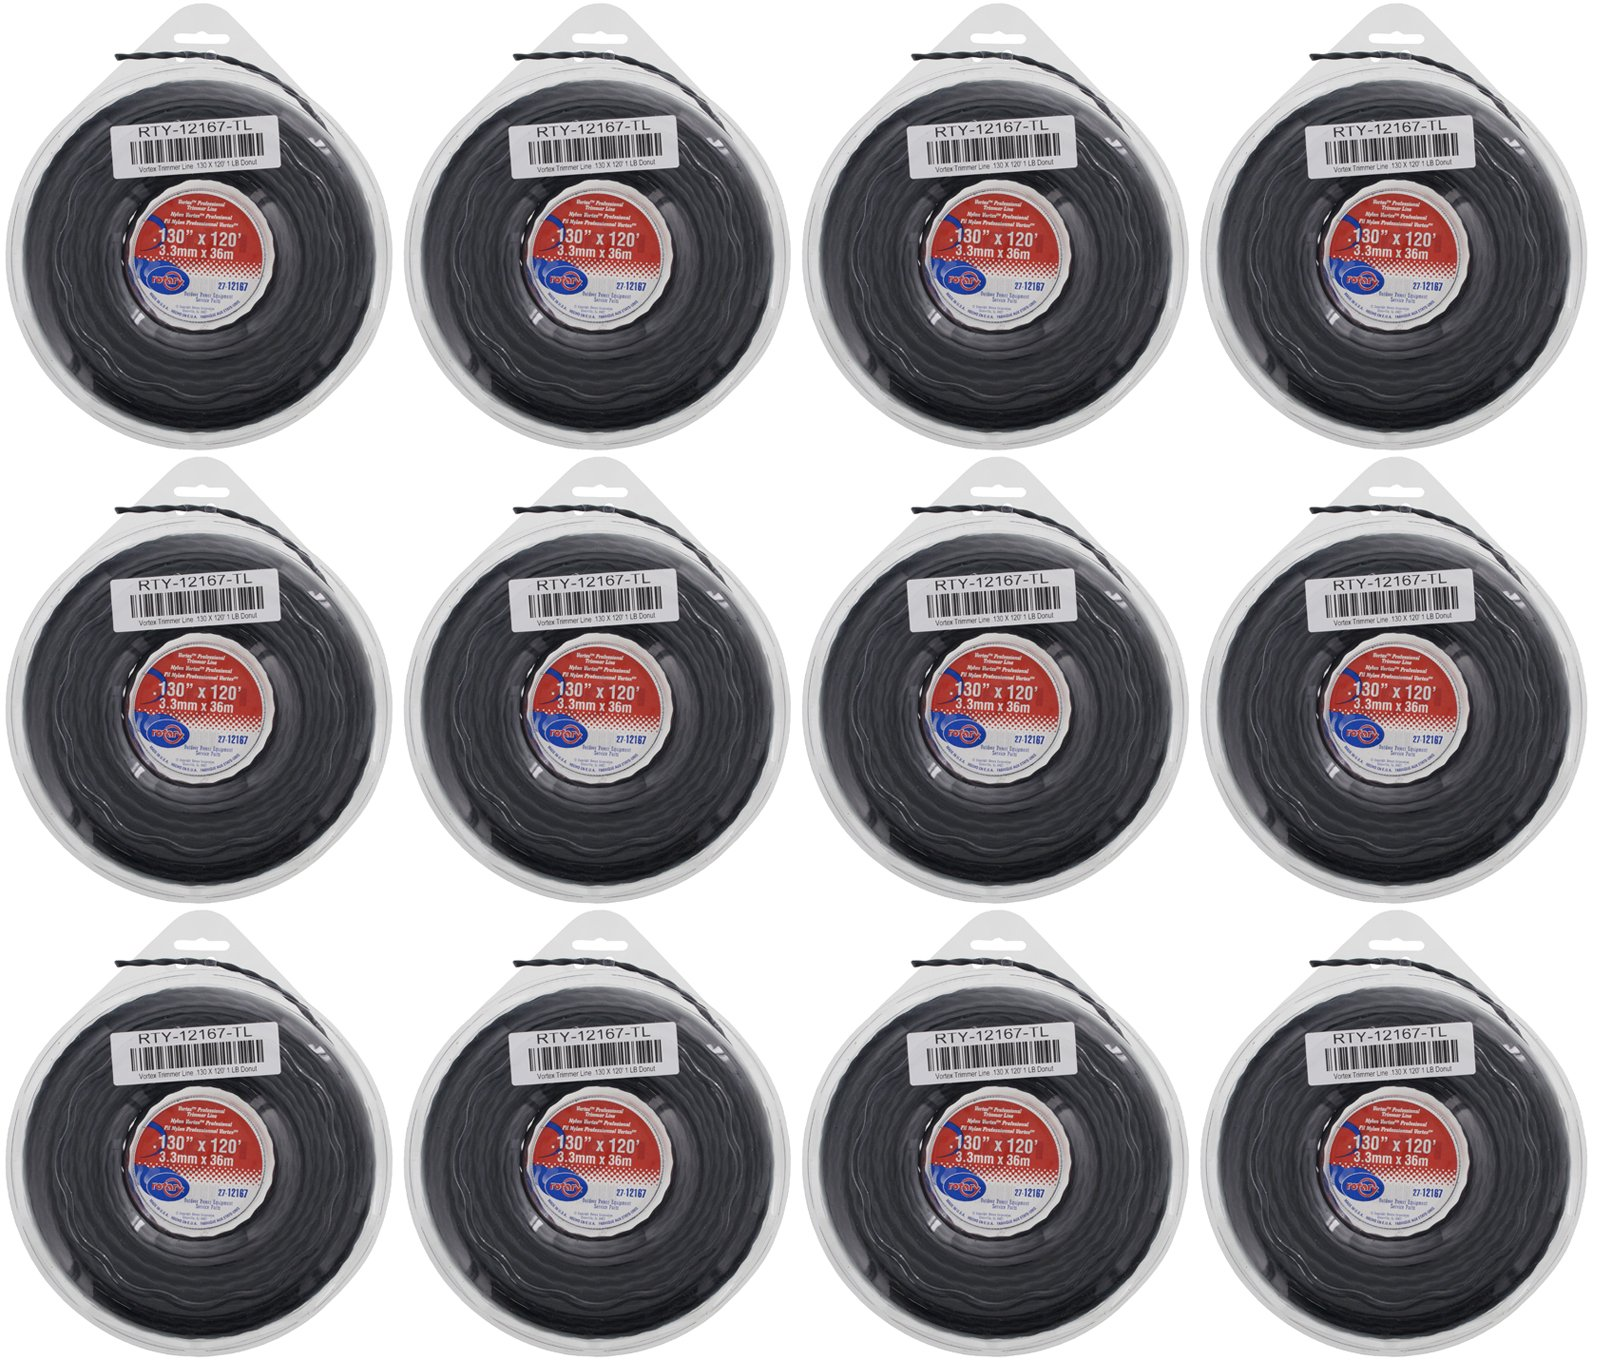 Rotary 12 Pack of Vortex Trimmer Line 12167 .130 x 120 1 LBS Donuts